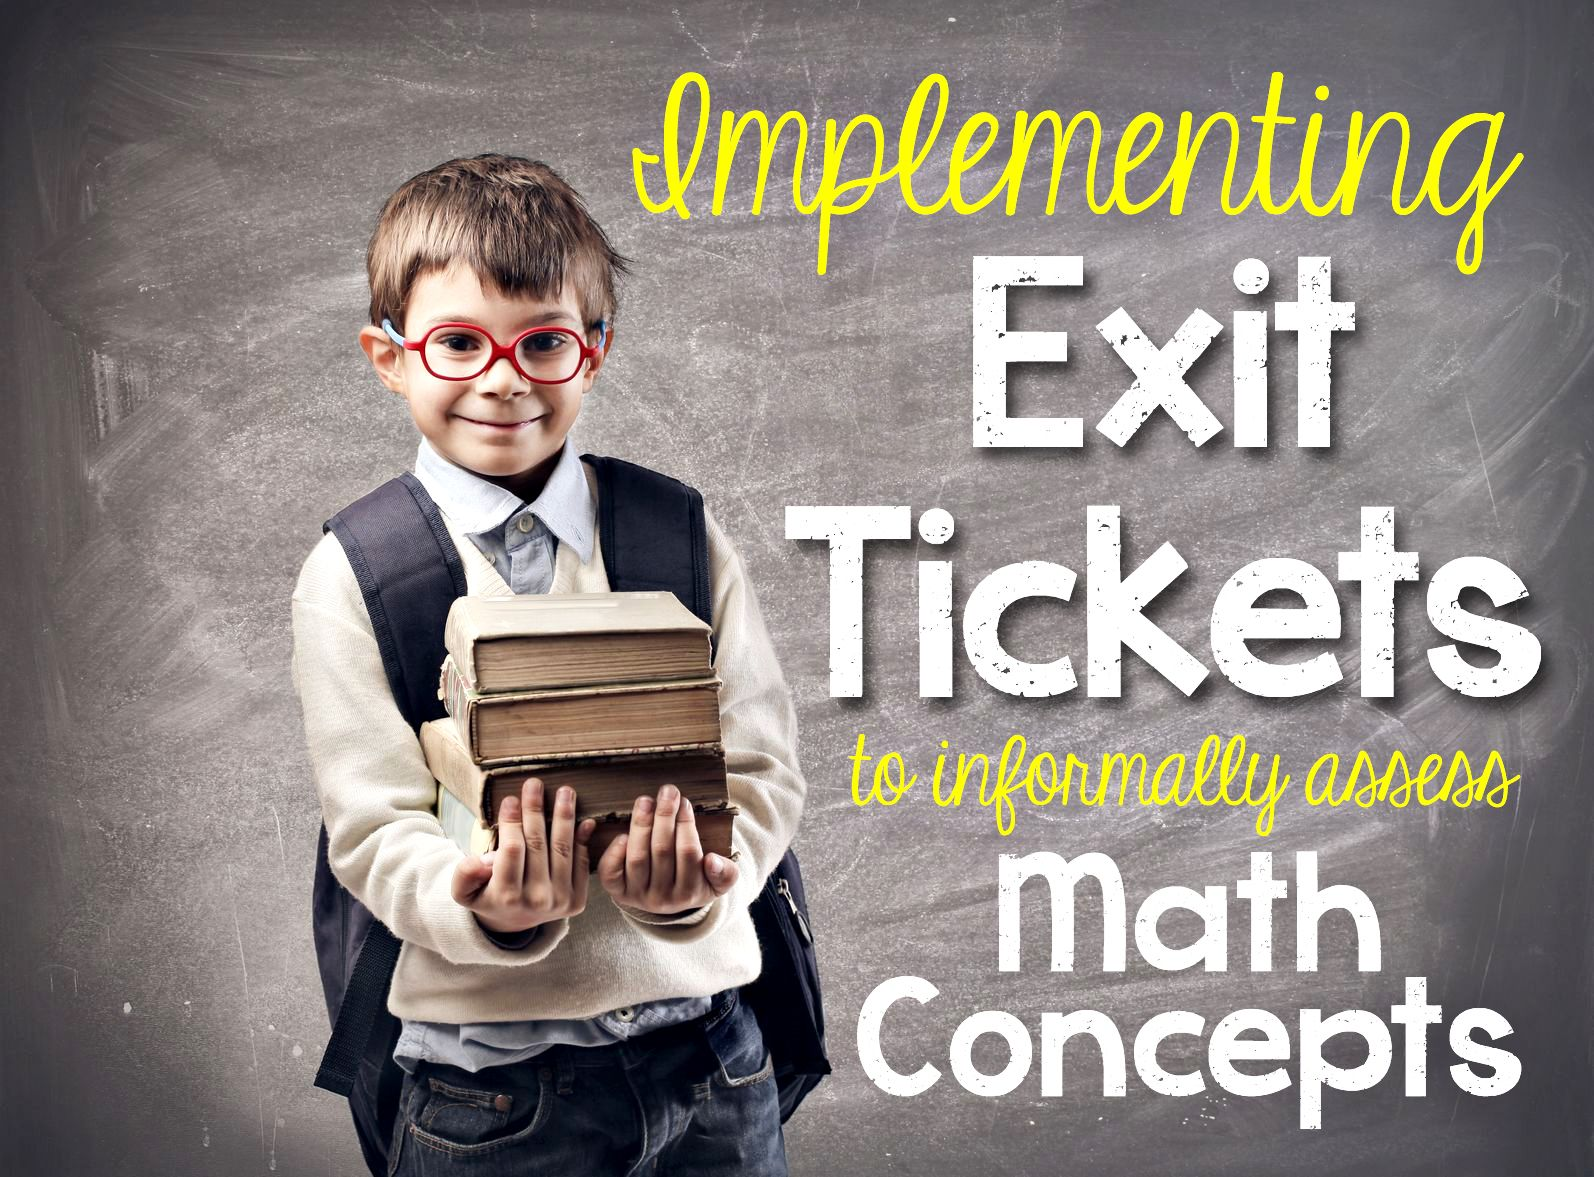 There are great benefits to utilizing Exit Tickets in your classroom!  Read on to find out how it can benefit your students and your instruction!